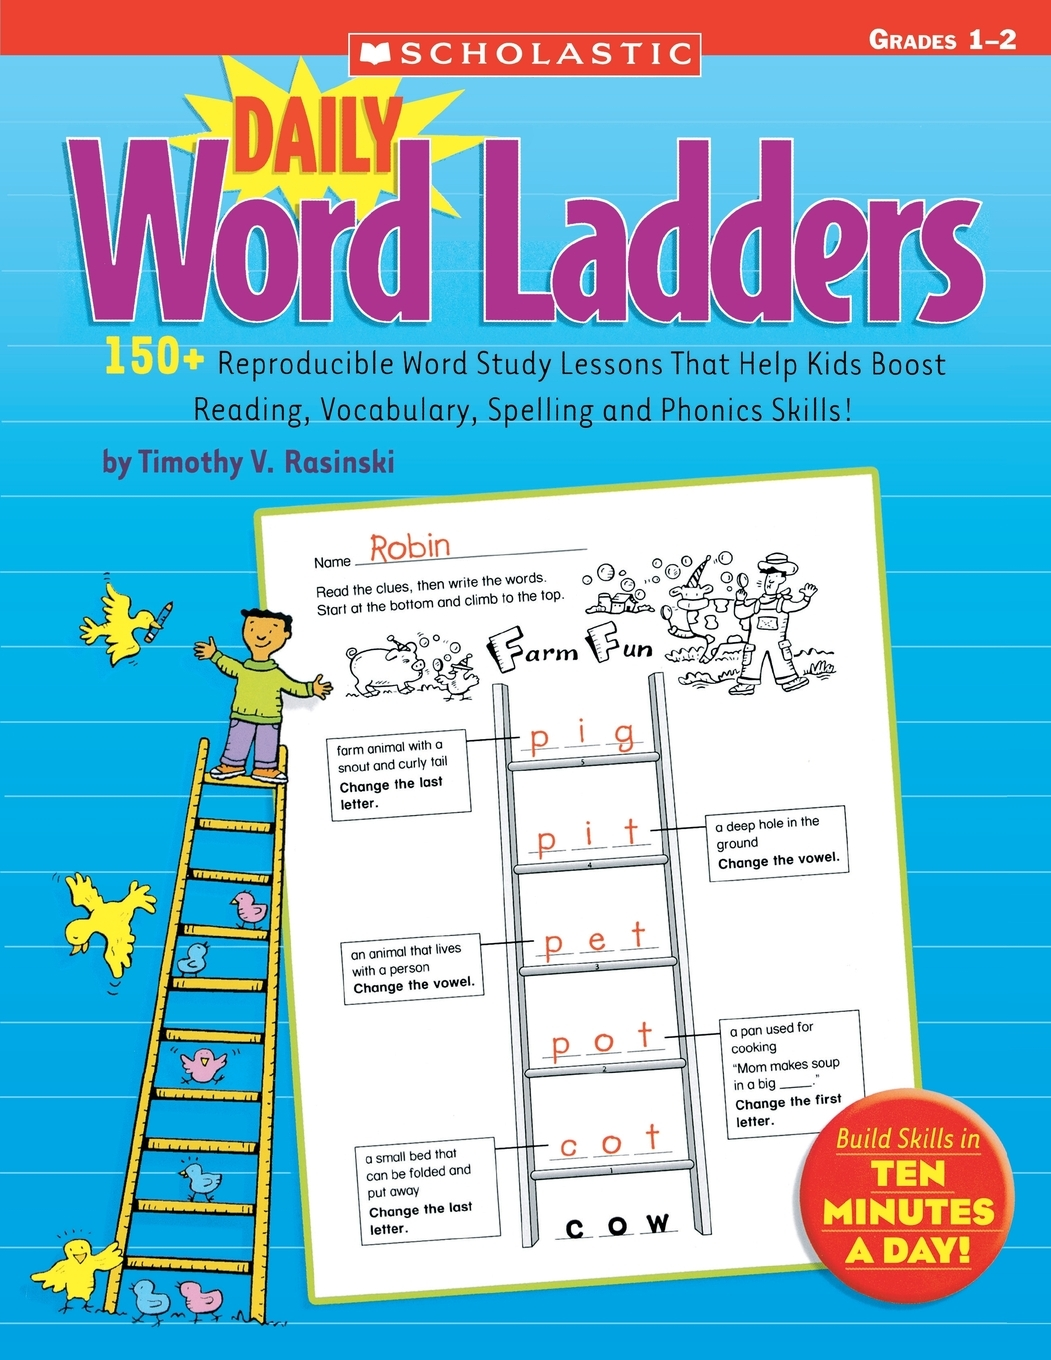 hight resolution of Daily Word Ladders Worksheets   Printable Worksheets and Activities for  Teachers